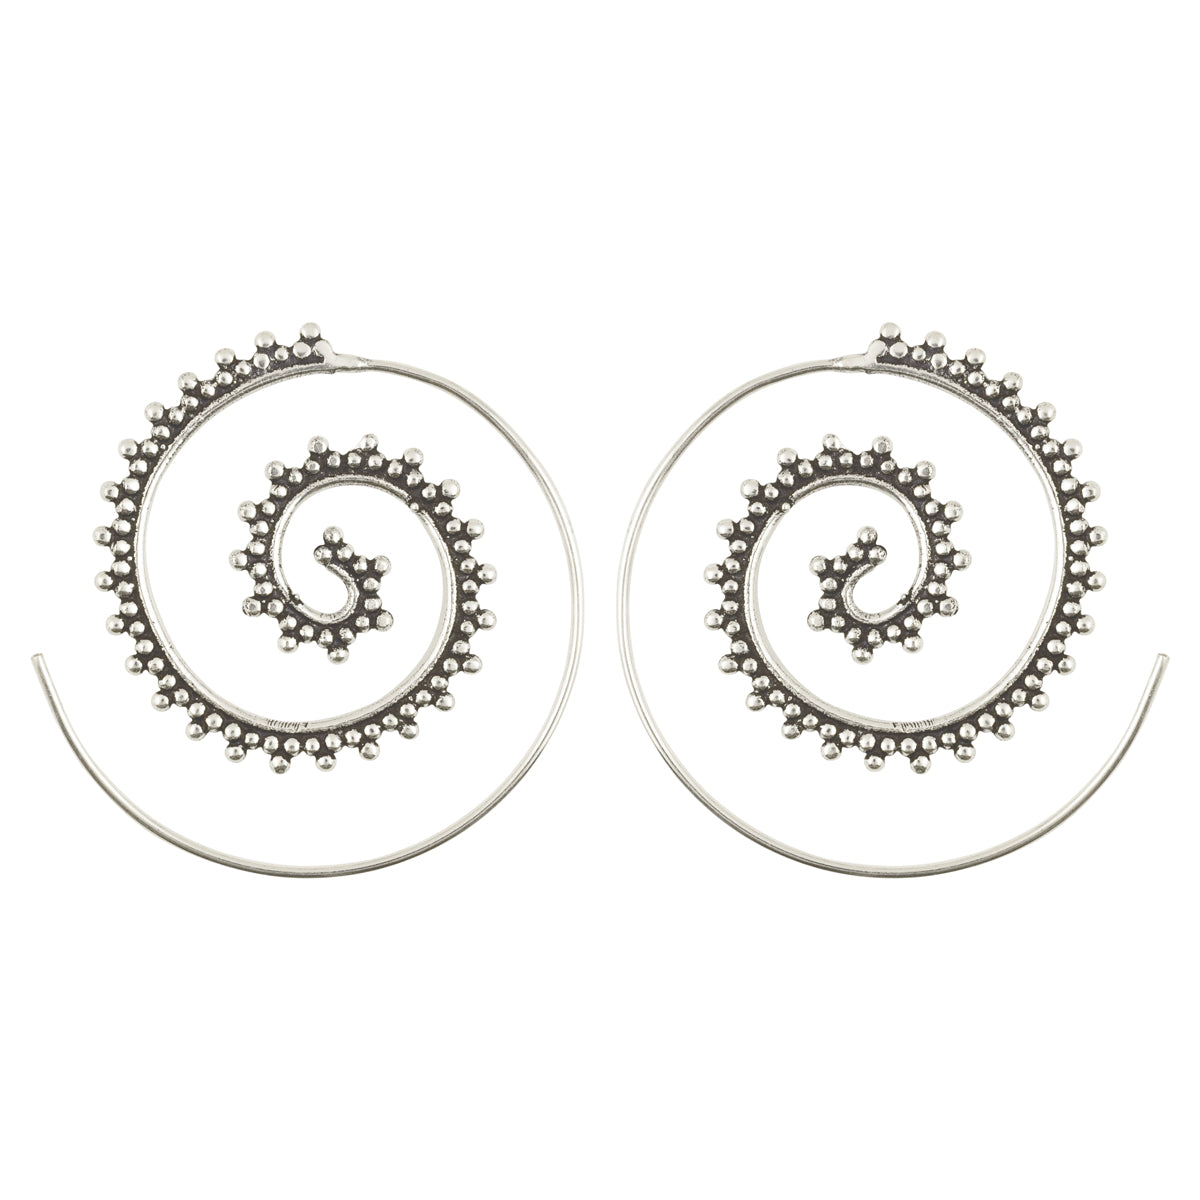 Simple-Brass Granular Dotted Spiral Earrings-Antique Silver-One Pair Camilla Blue